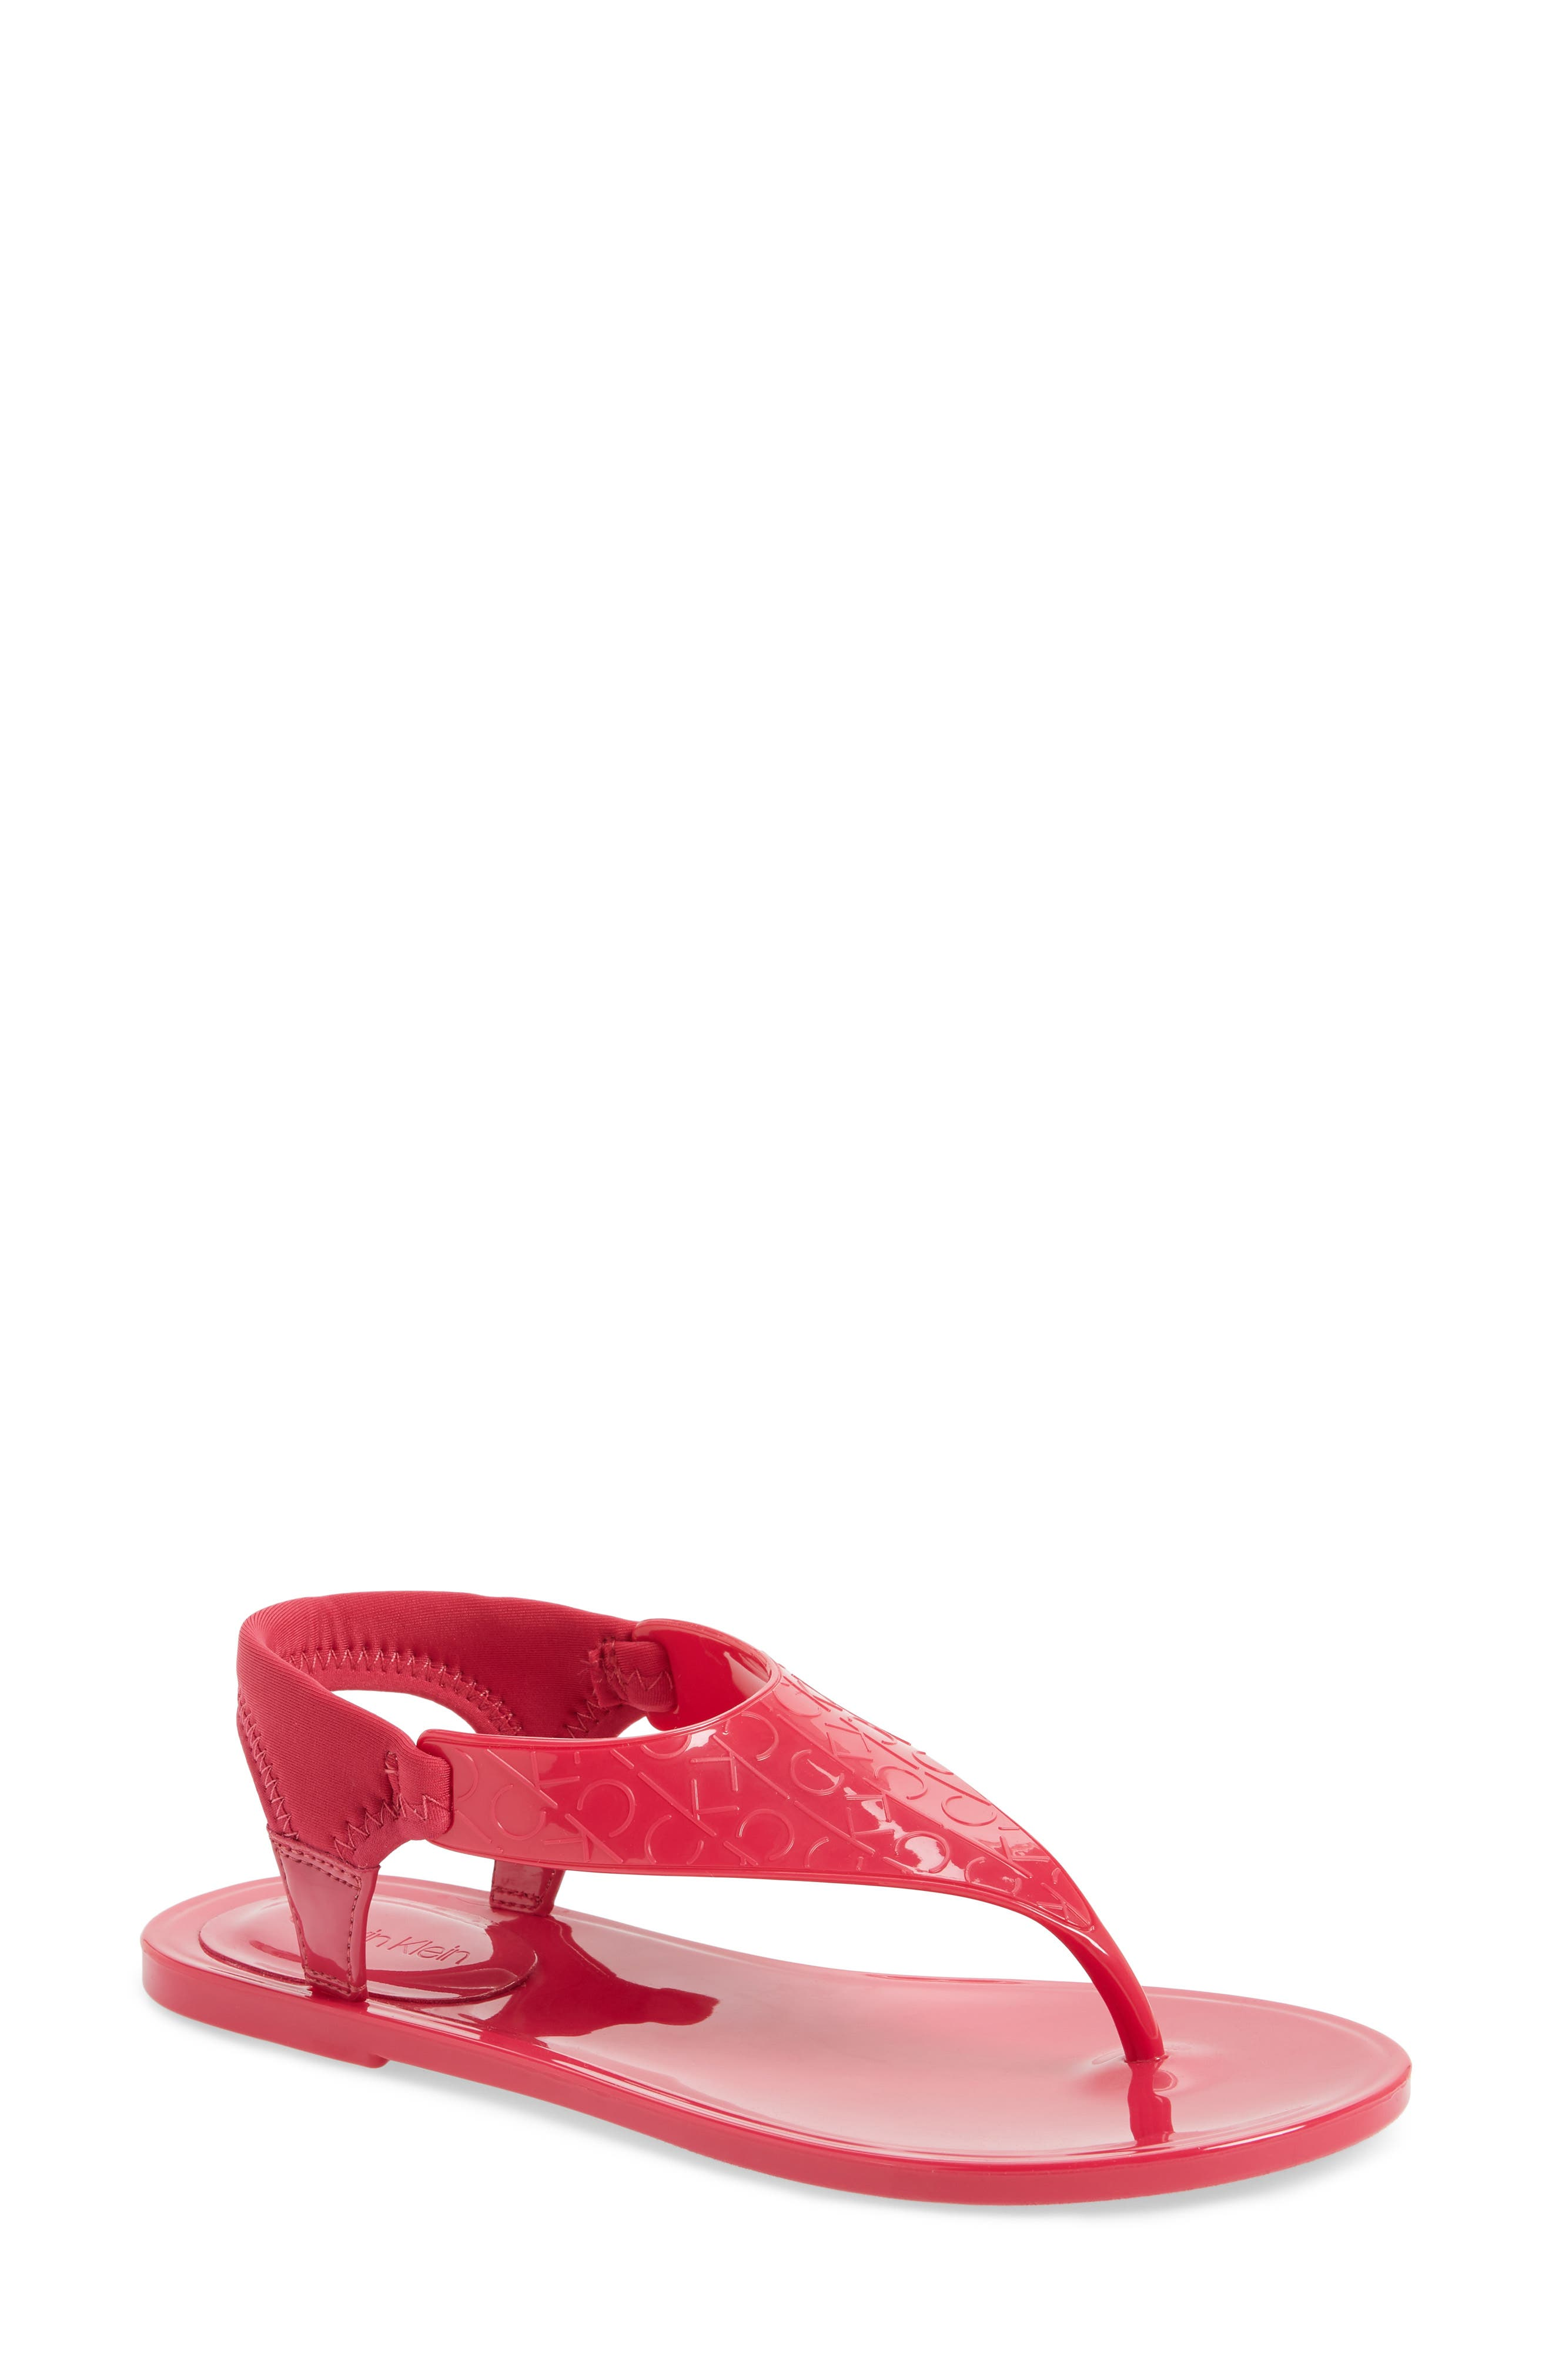 Janny Jelly Sandal,                         Main,                         color, Hibiscus Pink